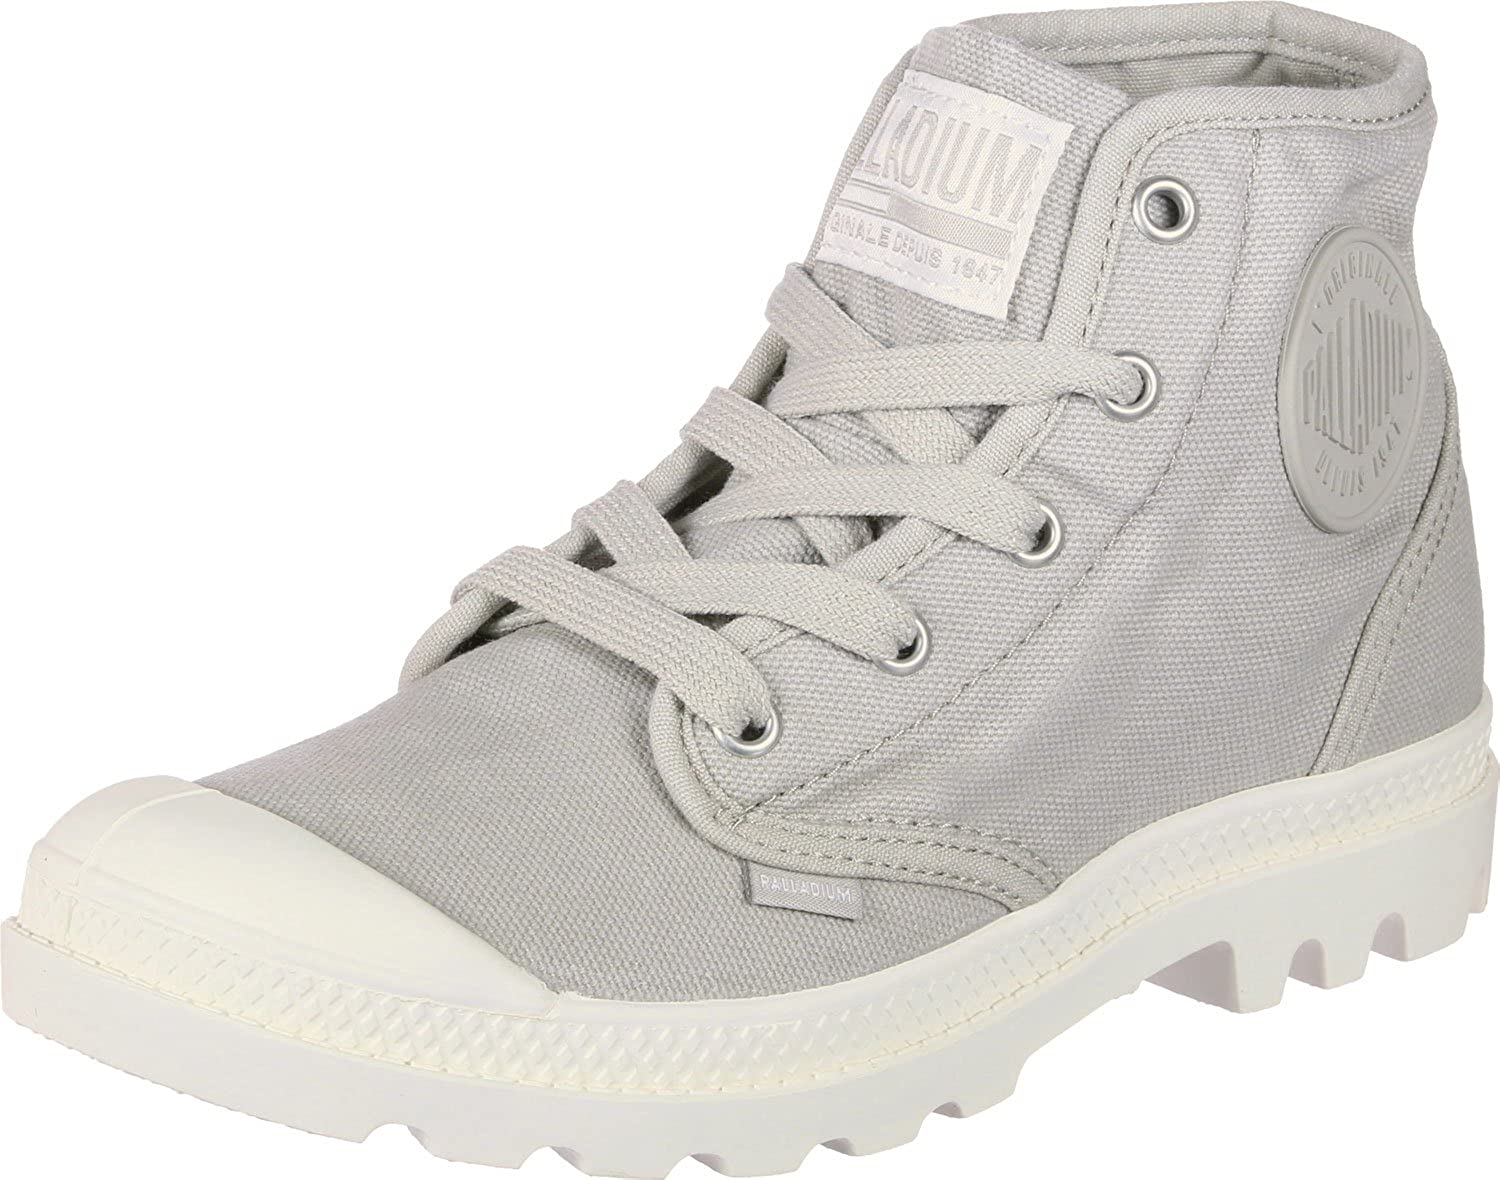 Palladium Women's Pampa High-Top Sneakers, Sahara Ecru